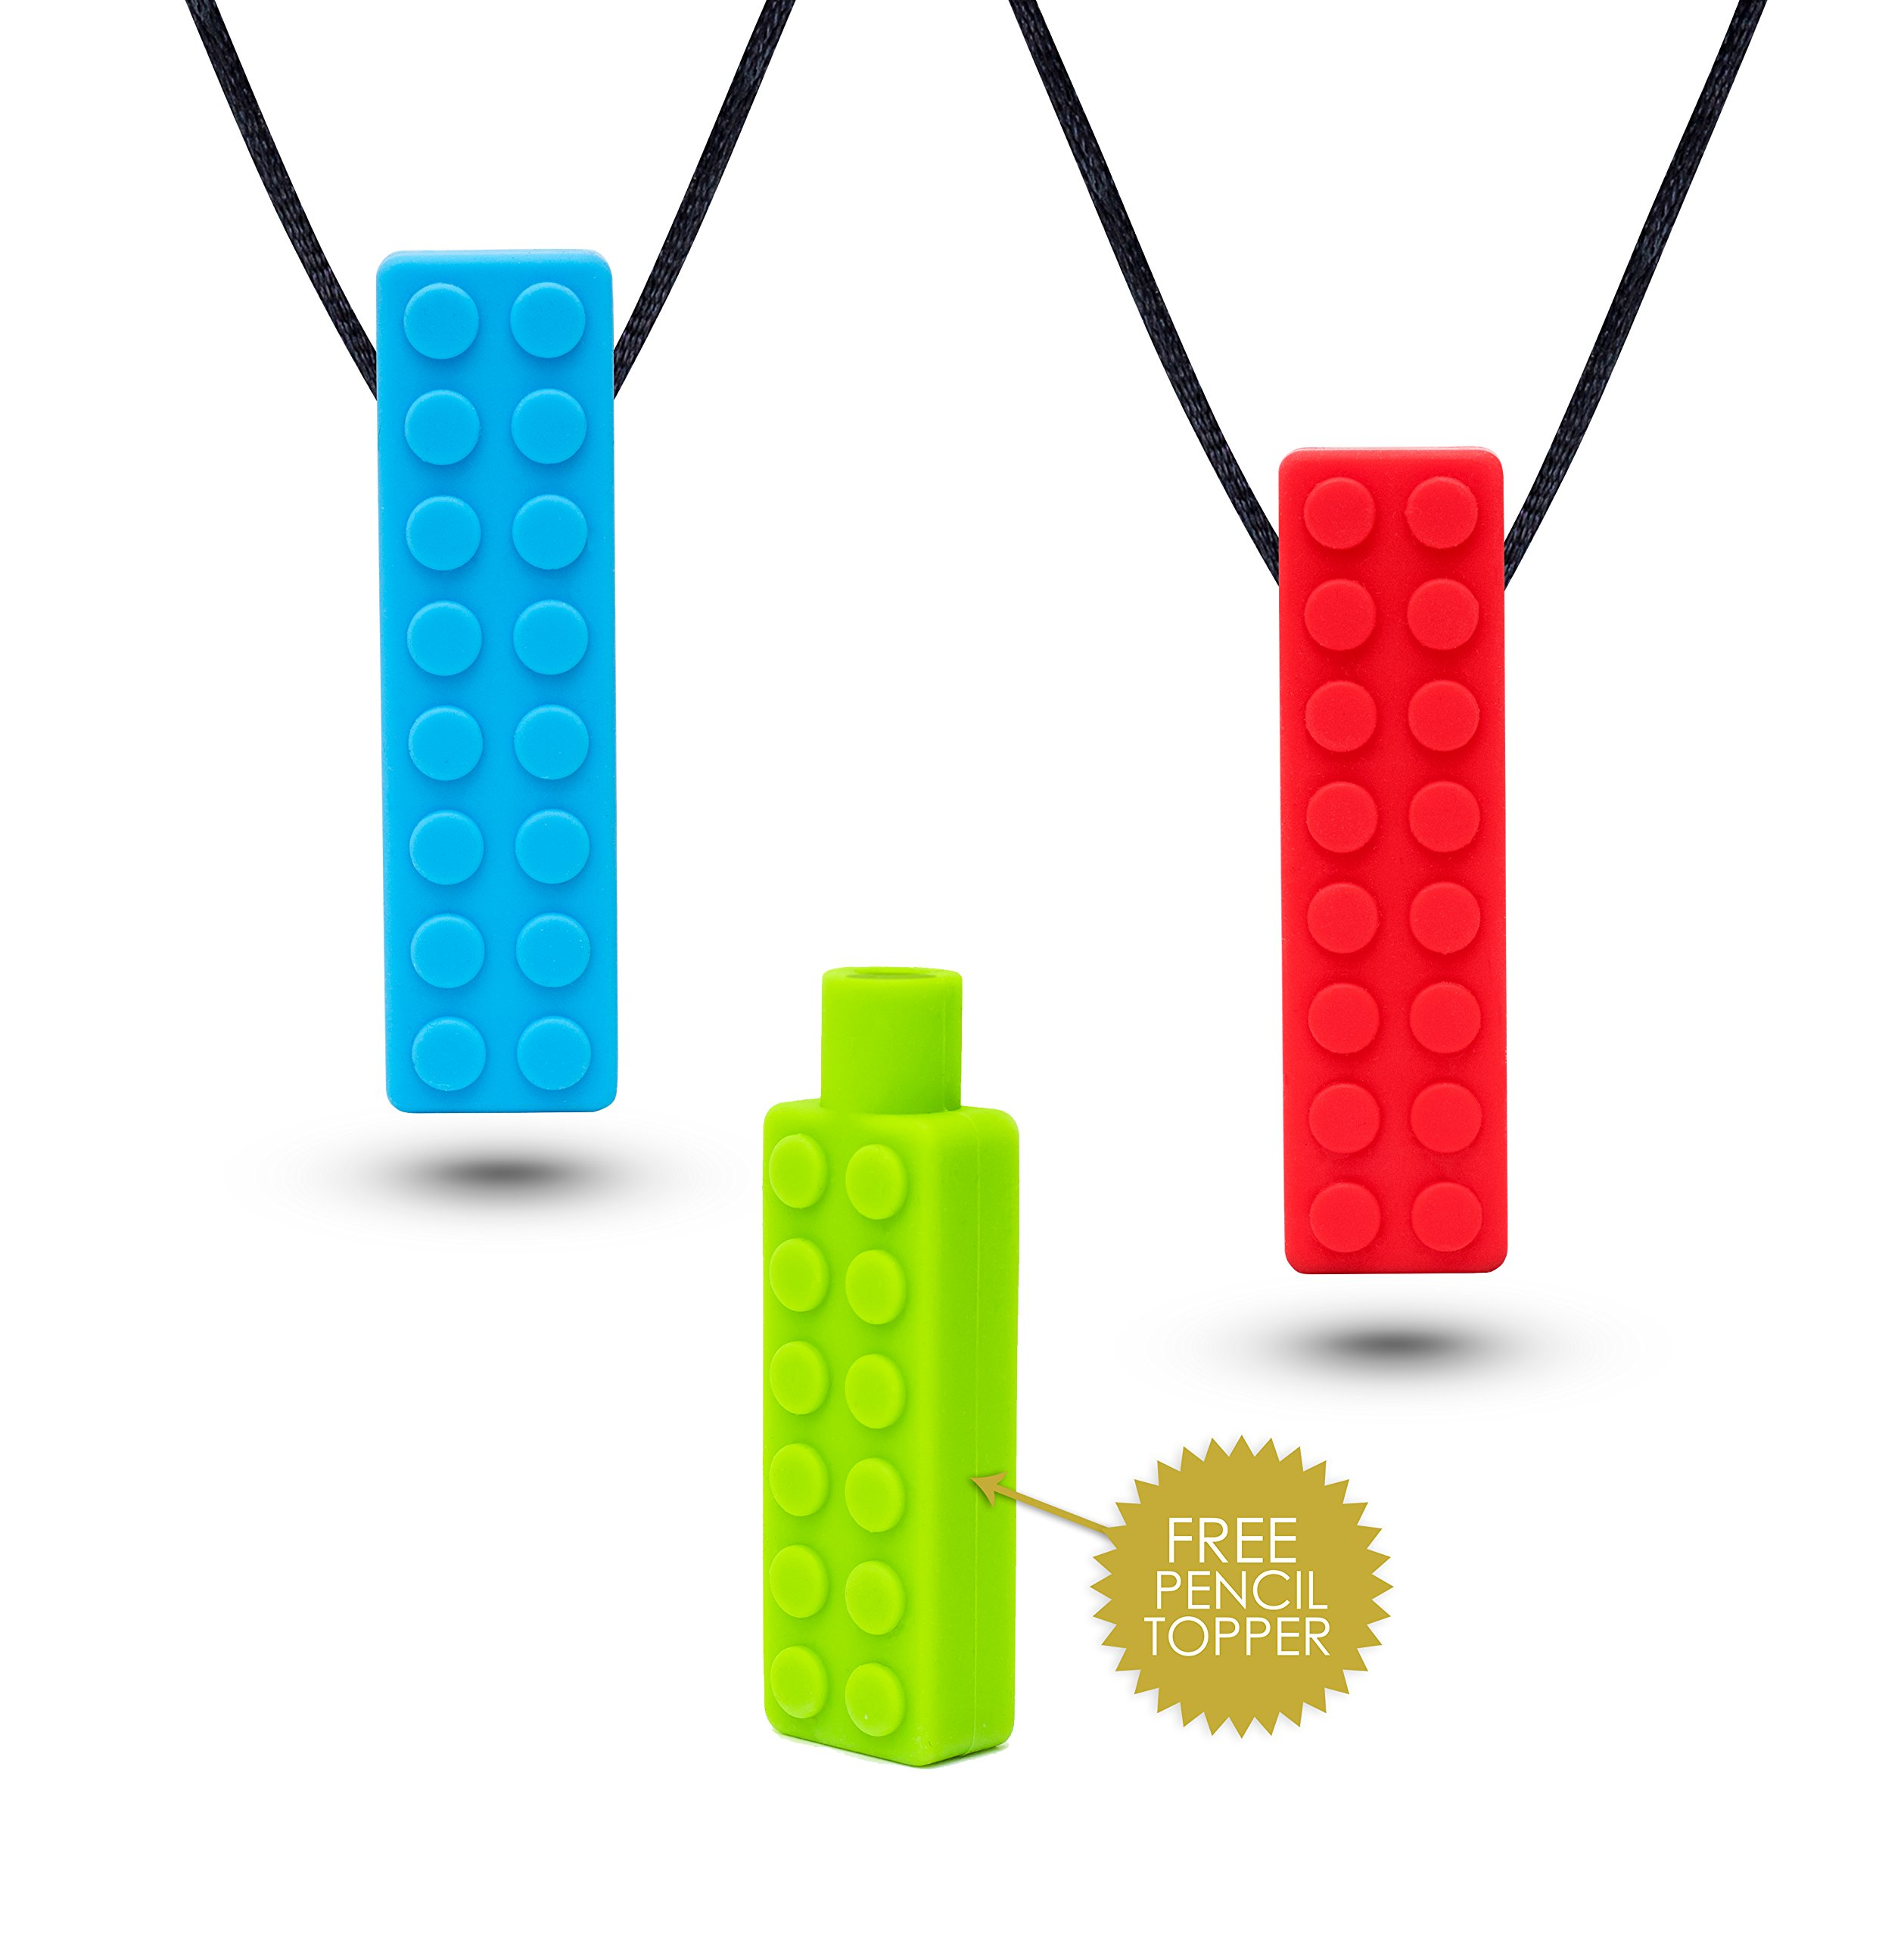 Sensory Necklace (2 PACK + FREE PENCIL TOPPER) - Chewy Necklace - Sensory Chewelry for Kids with Autism ADHD Biting Needs - Chew Toy for Boys and Girls - MORE FIRM by Optimum (Image #9)